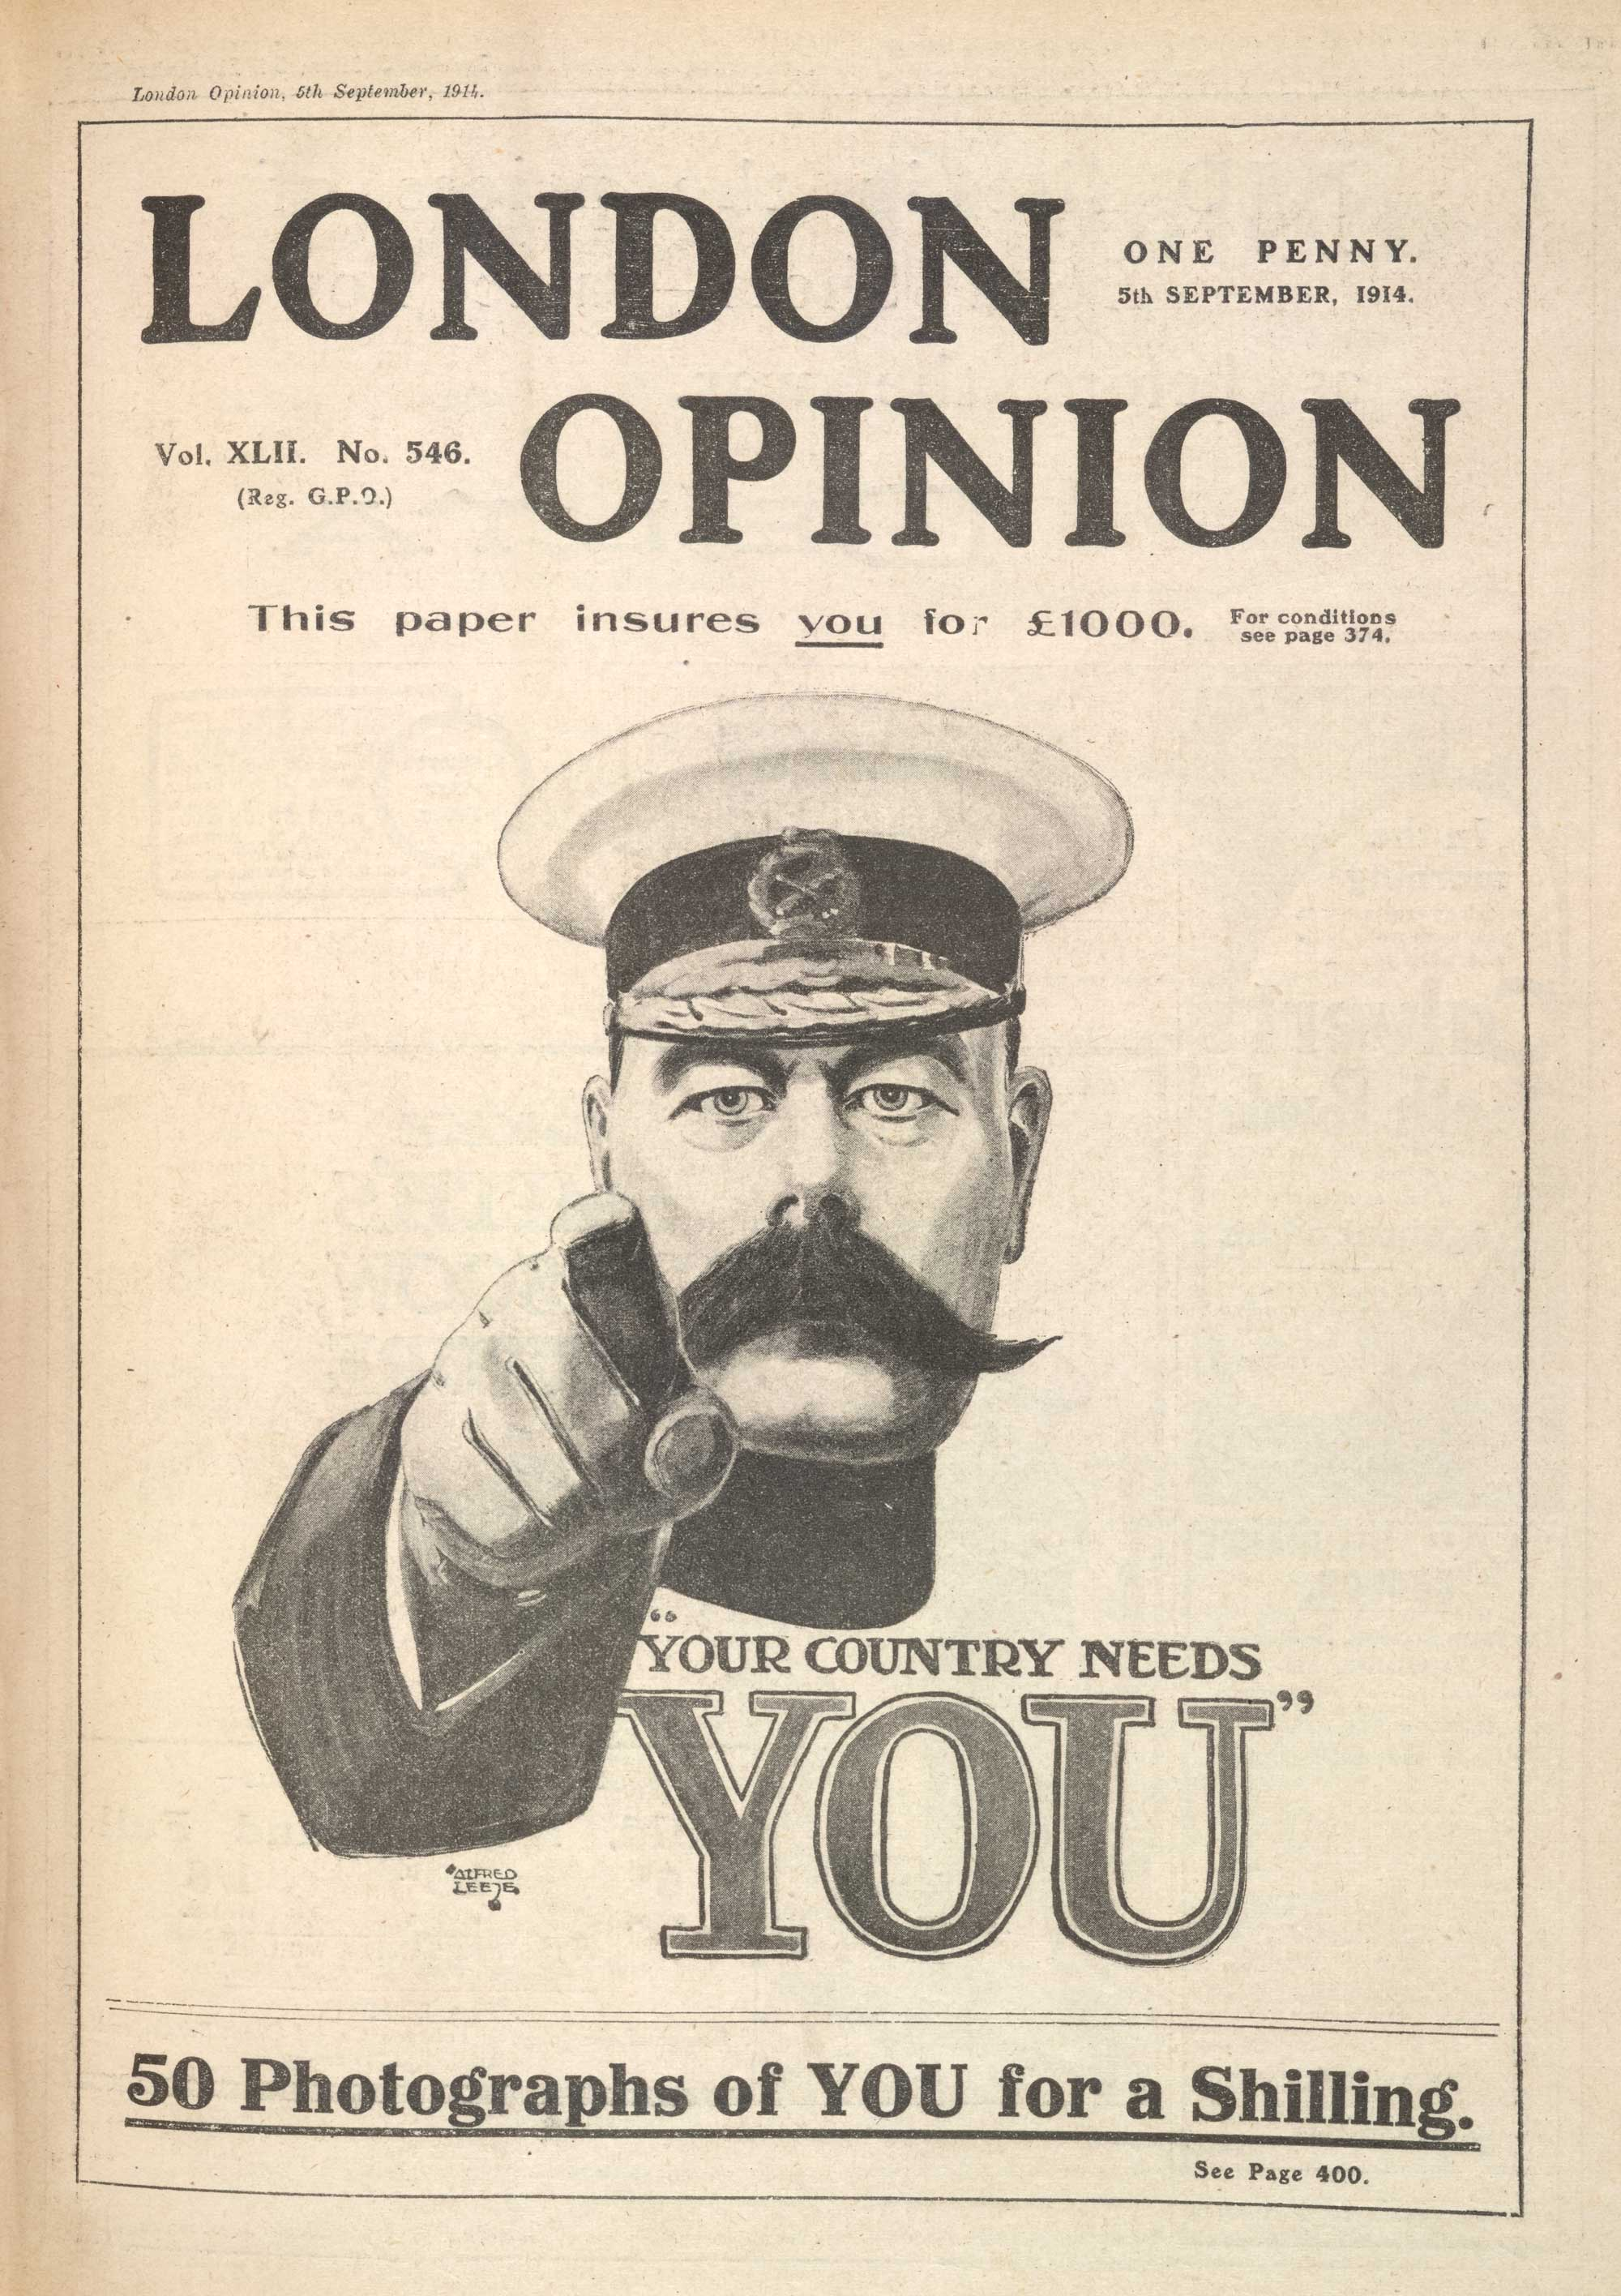 Famous Lord Kitchener recruitment poster, 'Your country needs you', produced in September 1914.